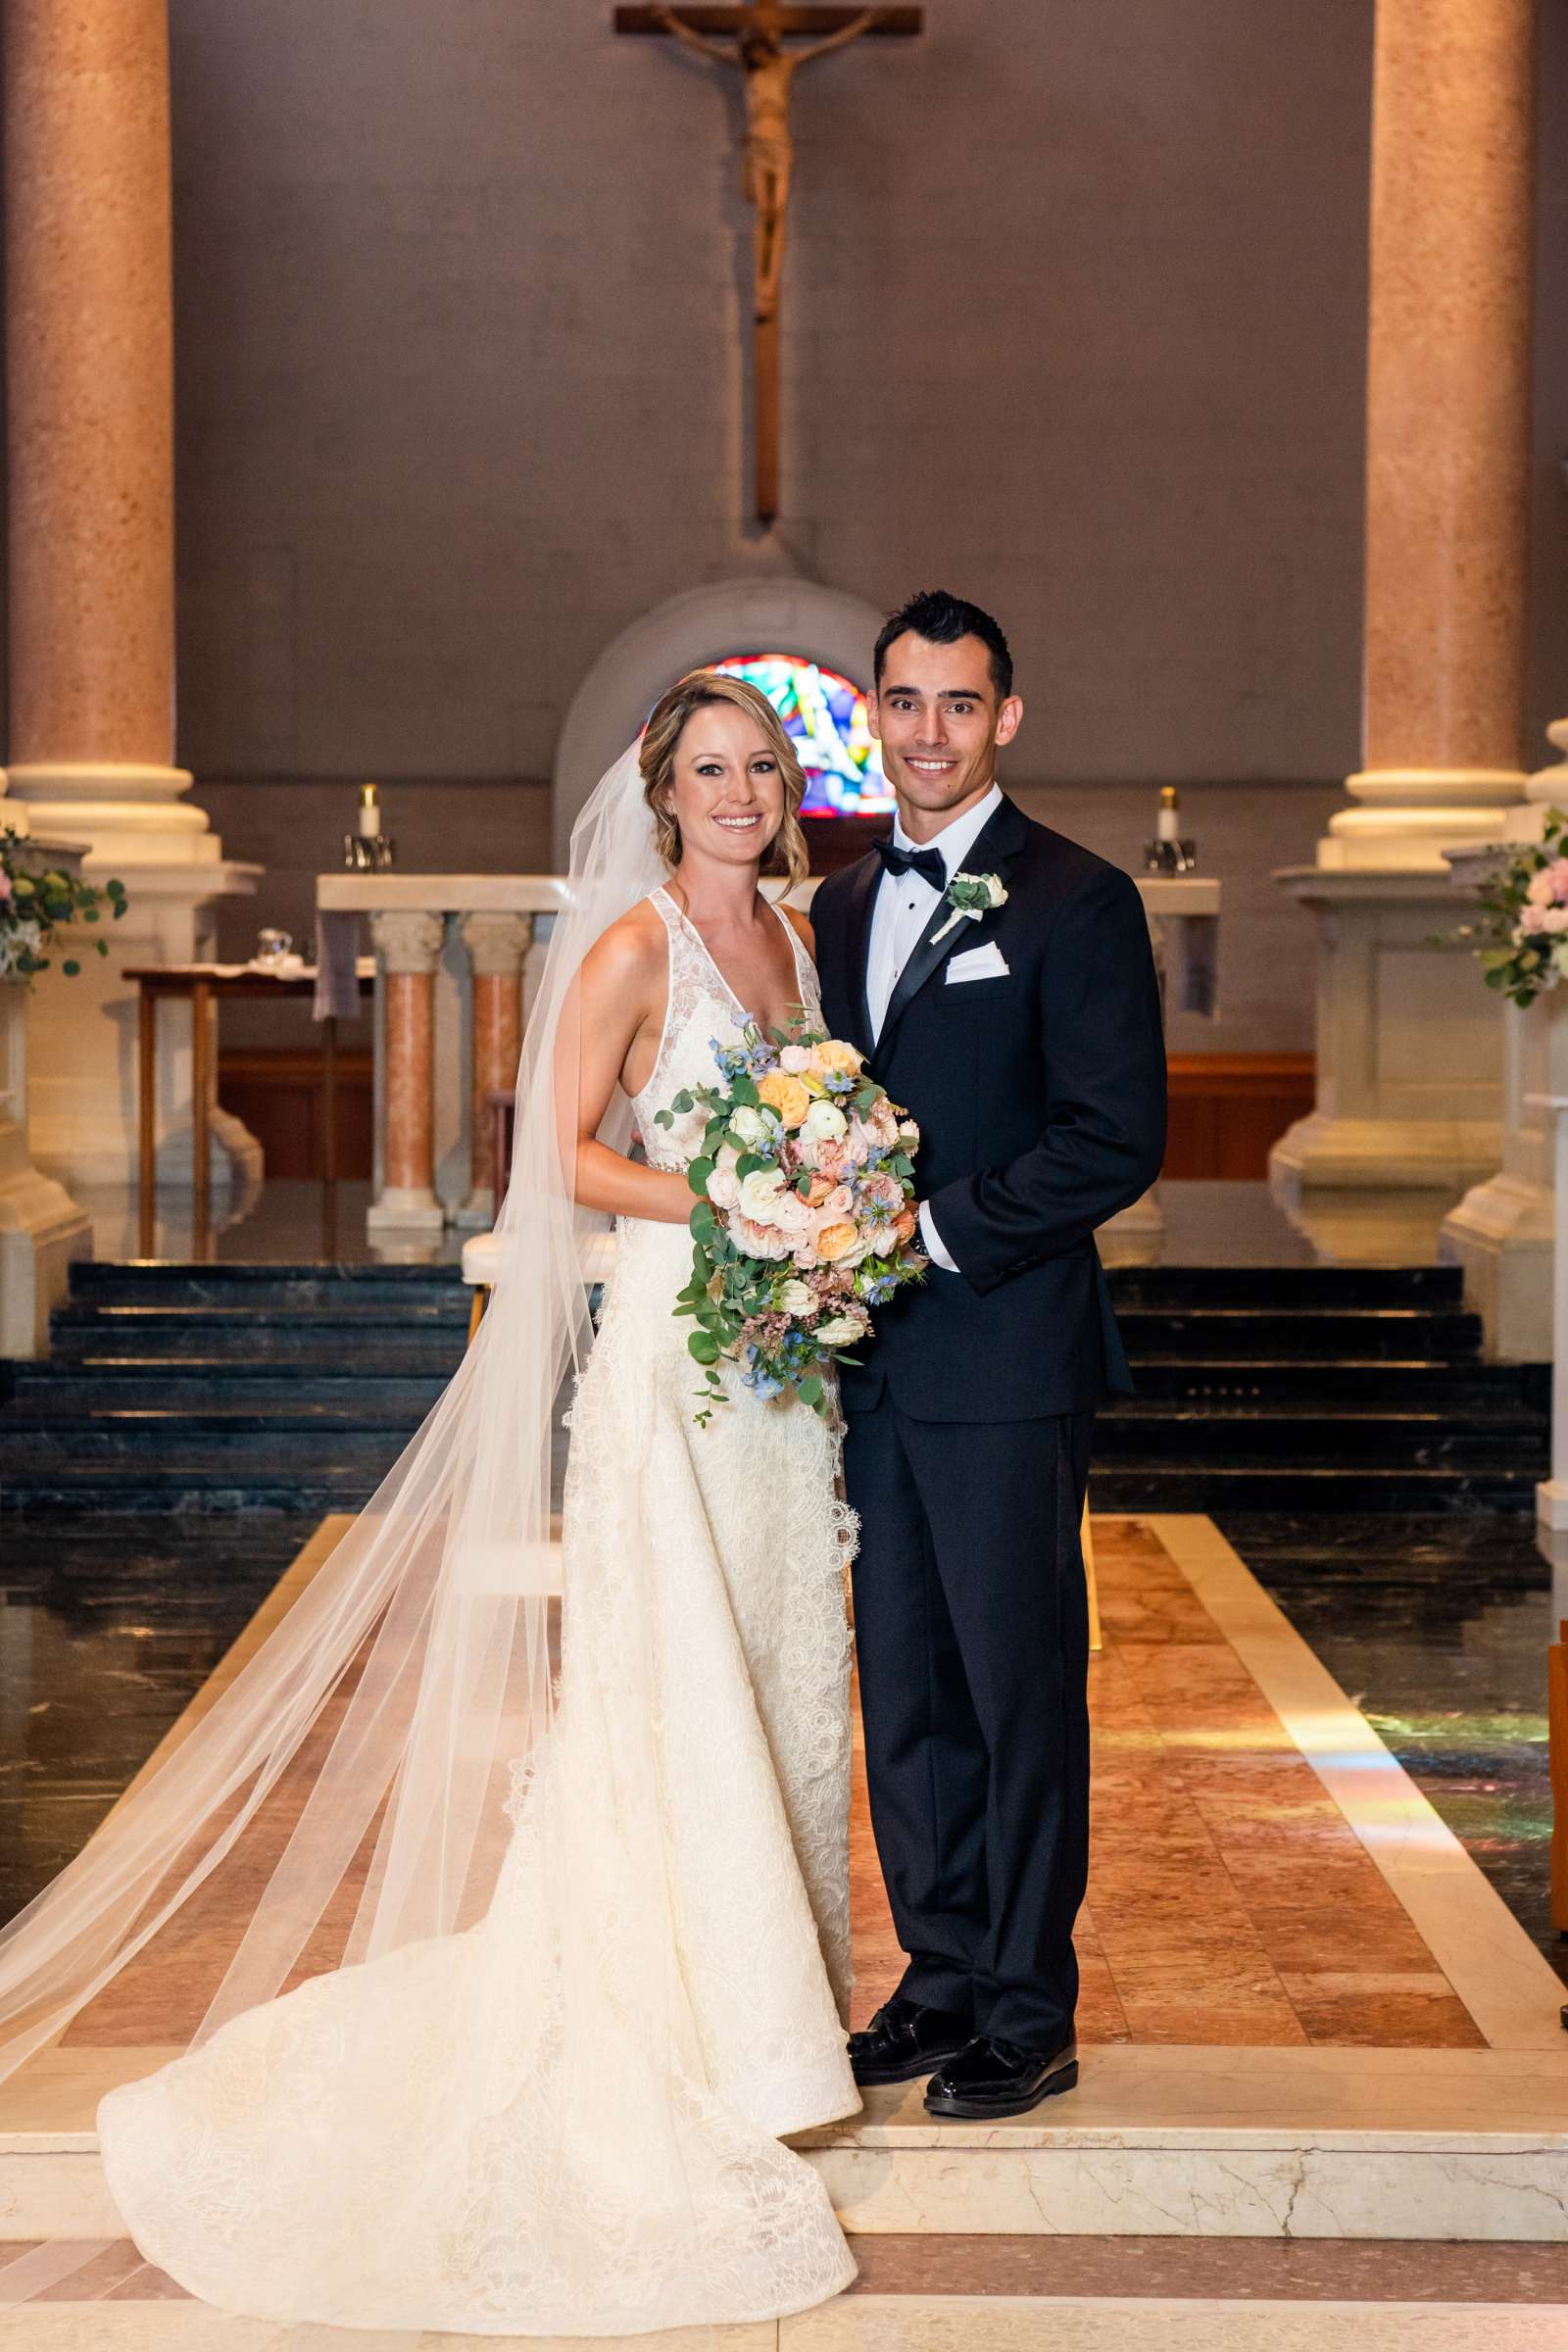 The Prado Wedding coordinated by Bliss Events, Sara and Marvin Wedding Photo #559470 by True Photography